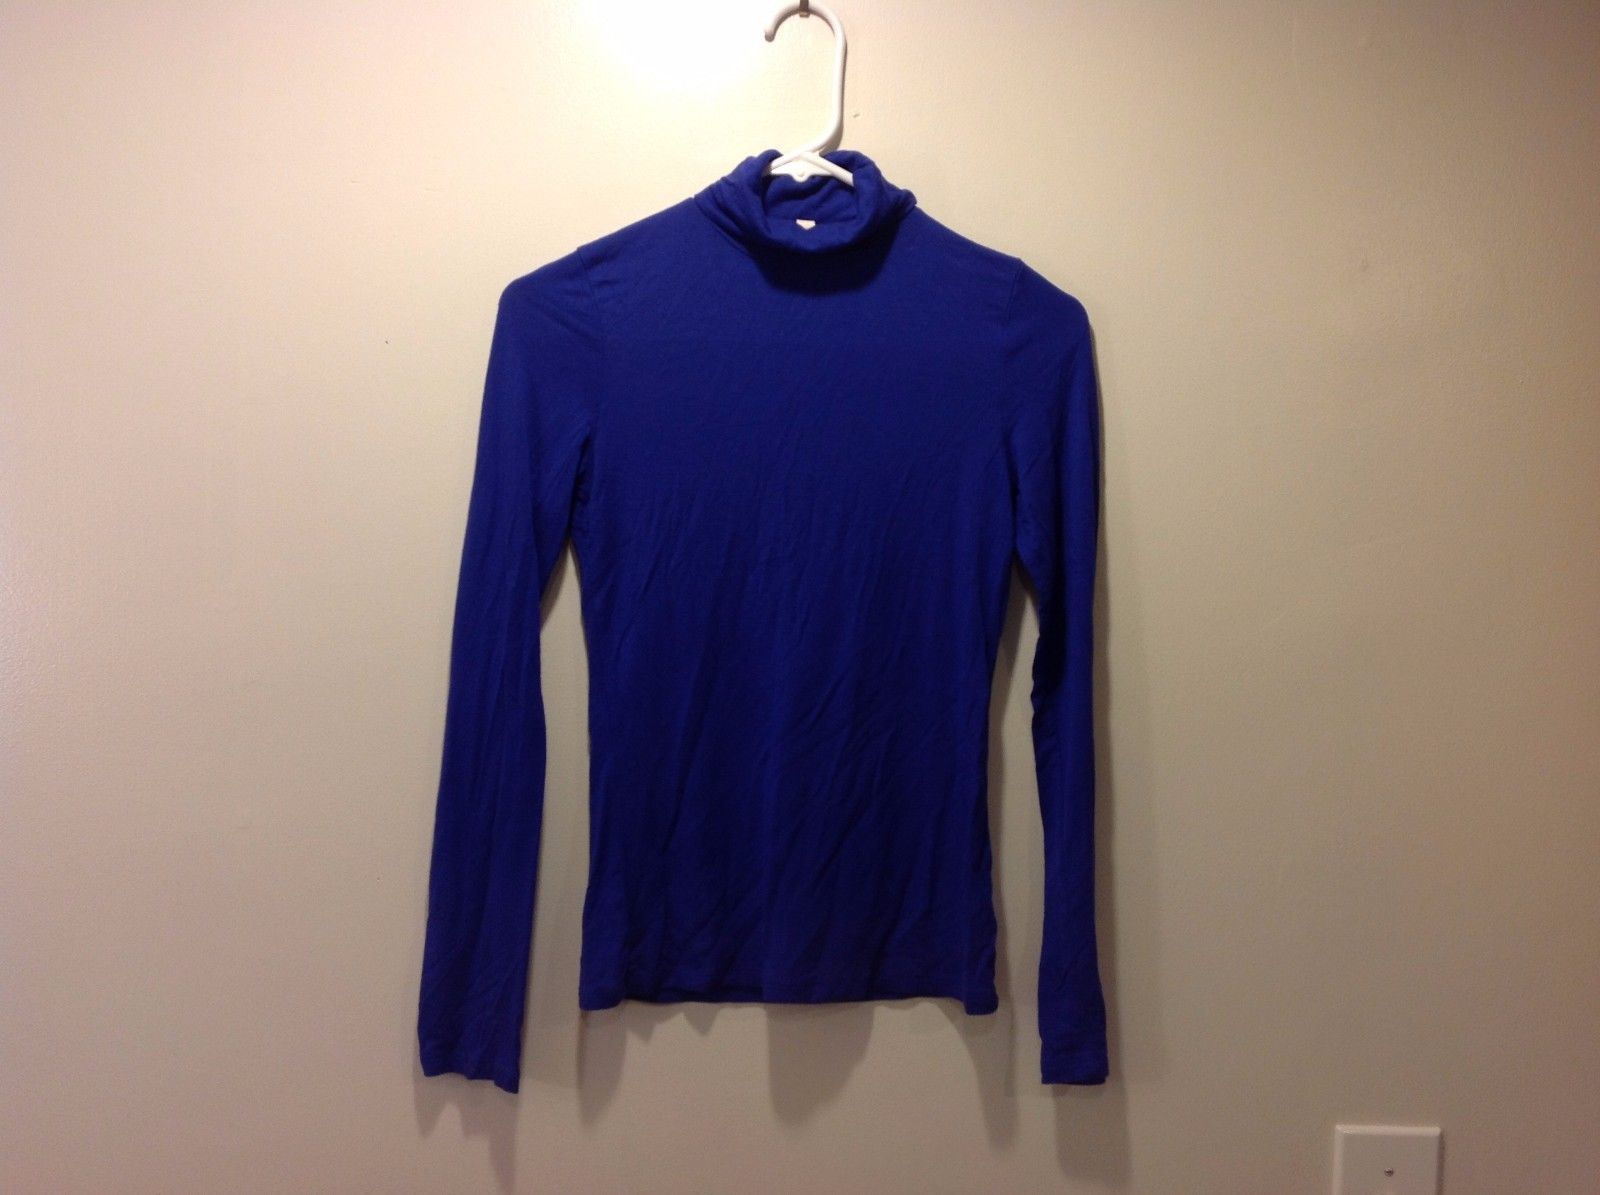 Calkwalk Studia Indigo Long Sleeved Turtleneck Sz Medium